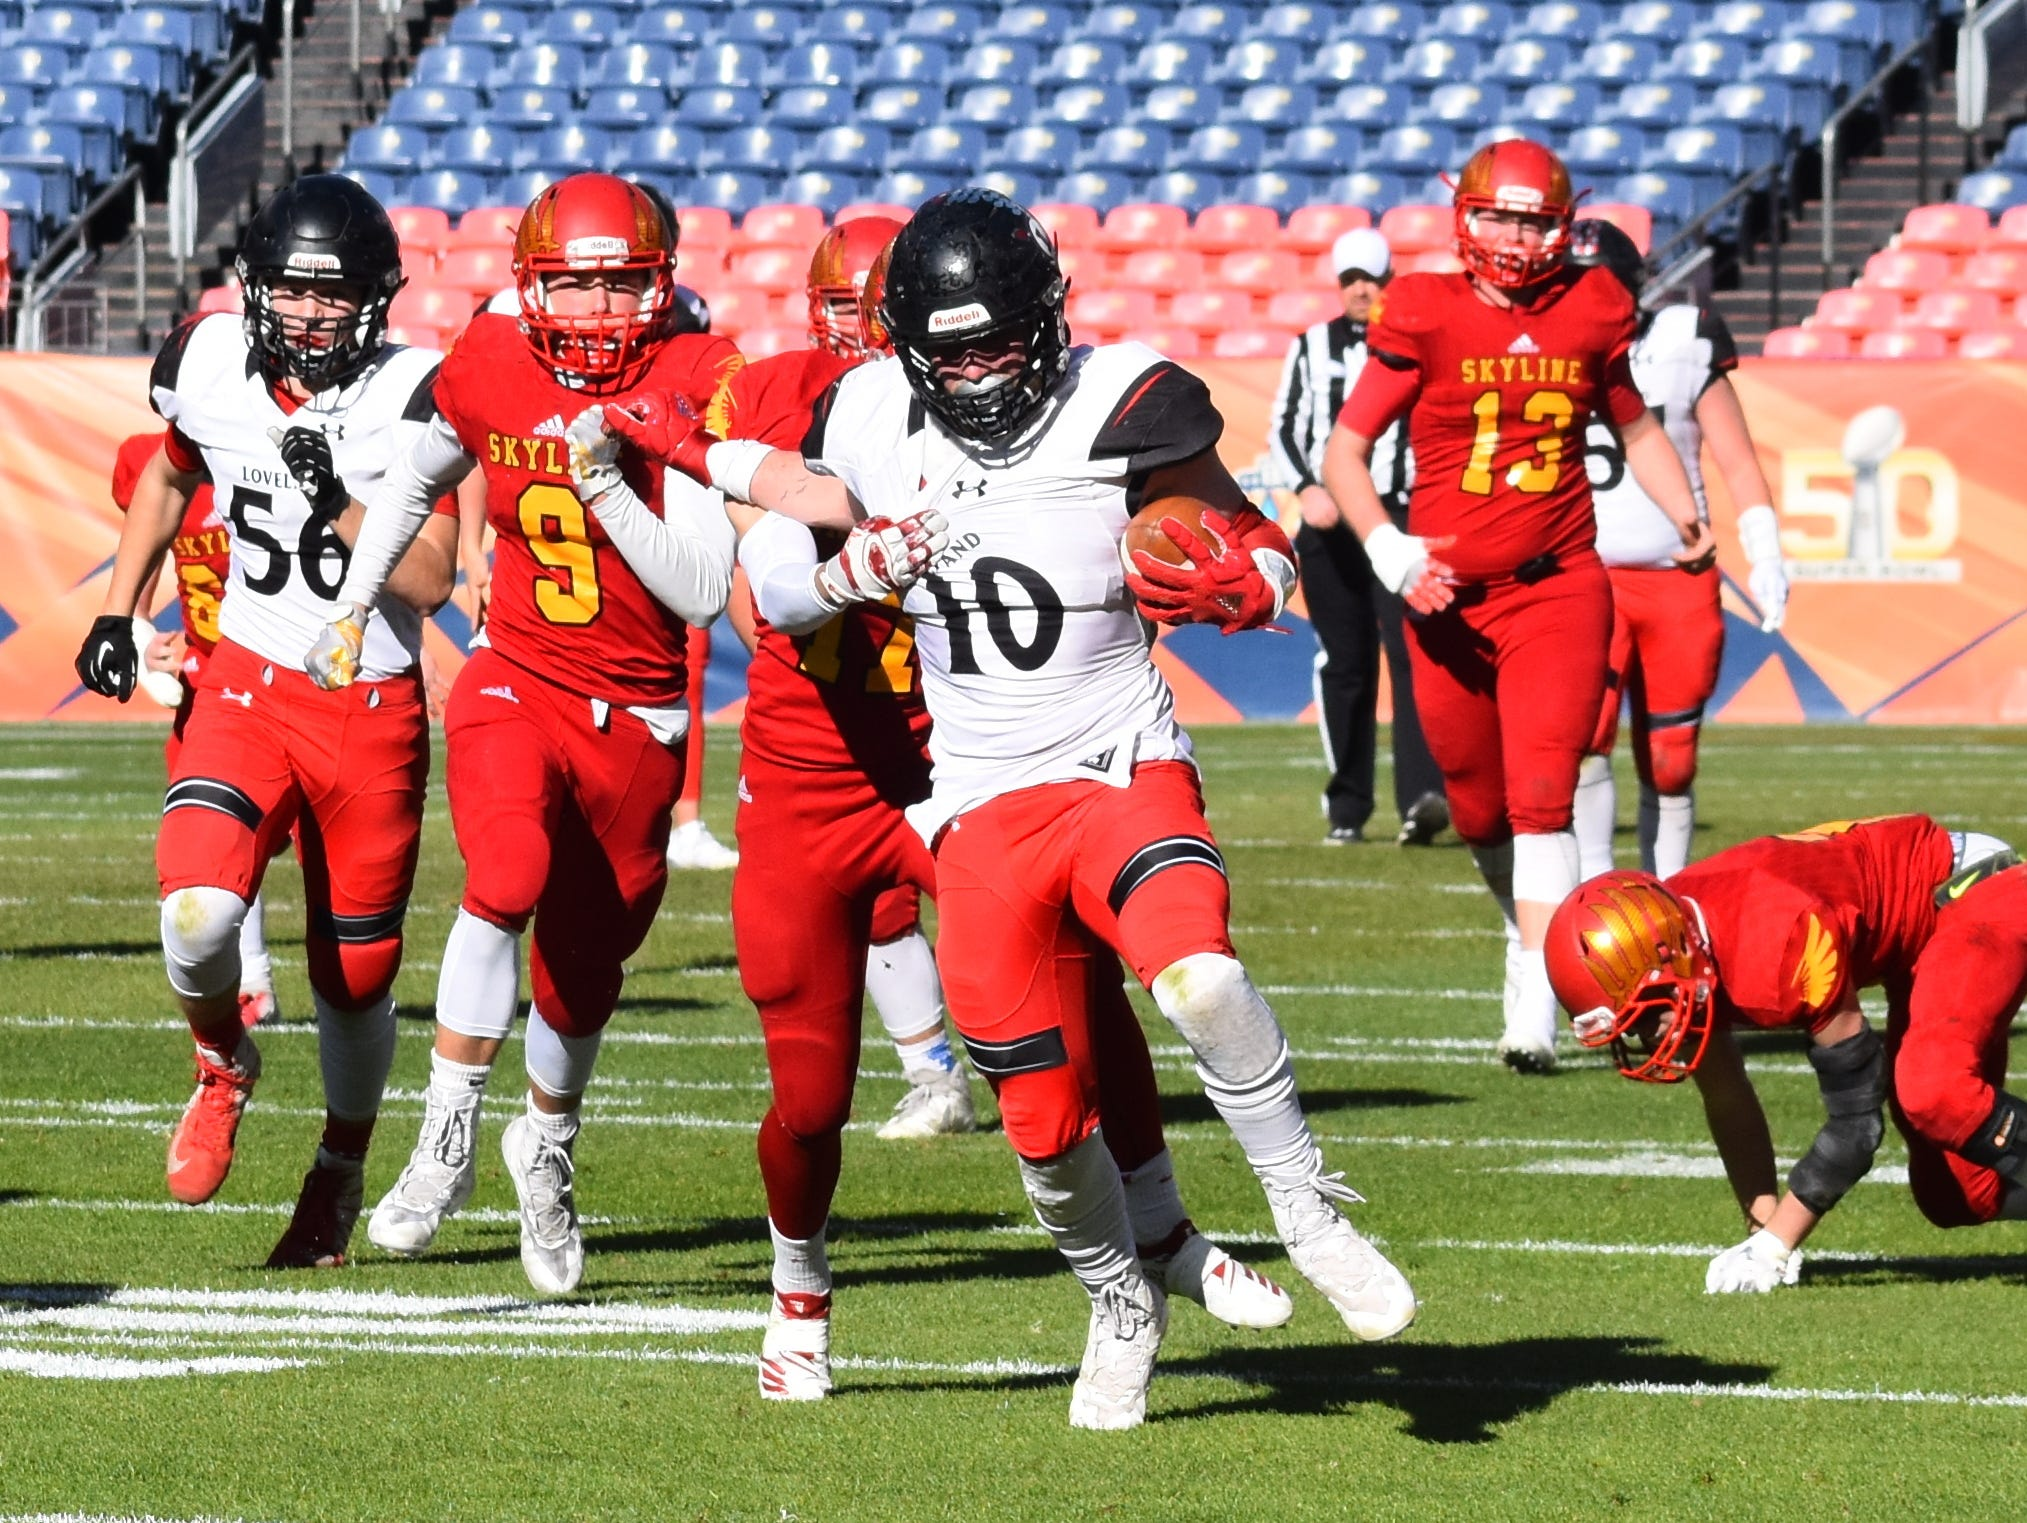 Loveland High School's Sean Boylan tries to break away from a Skyline defender during Saturday's Class 4A state championship football game in Denver.